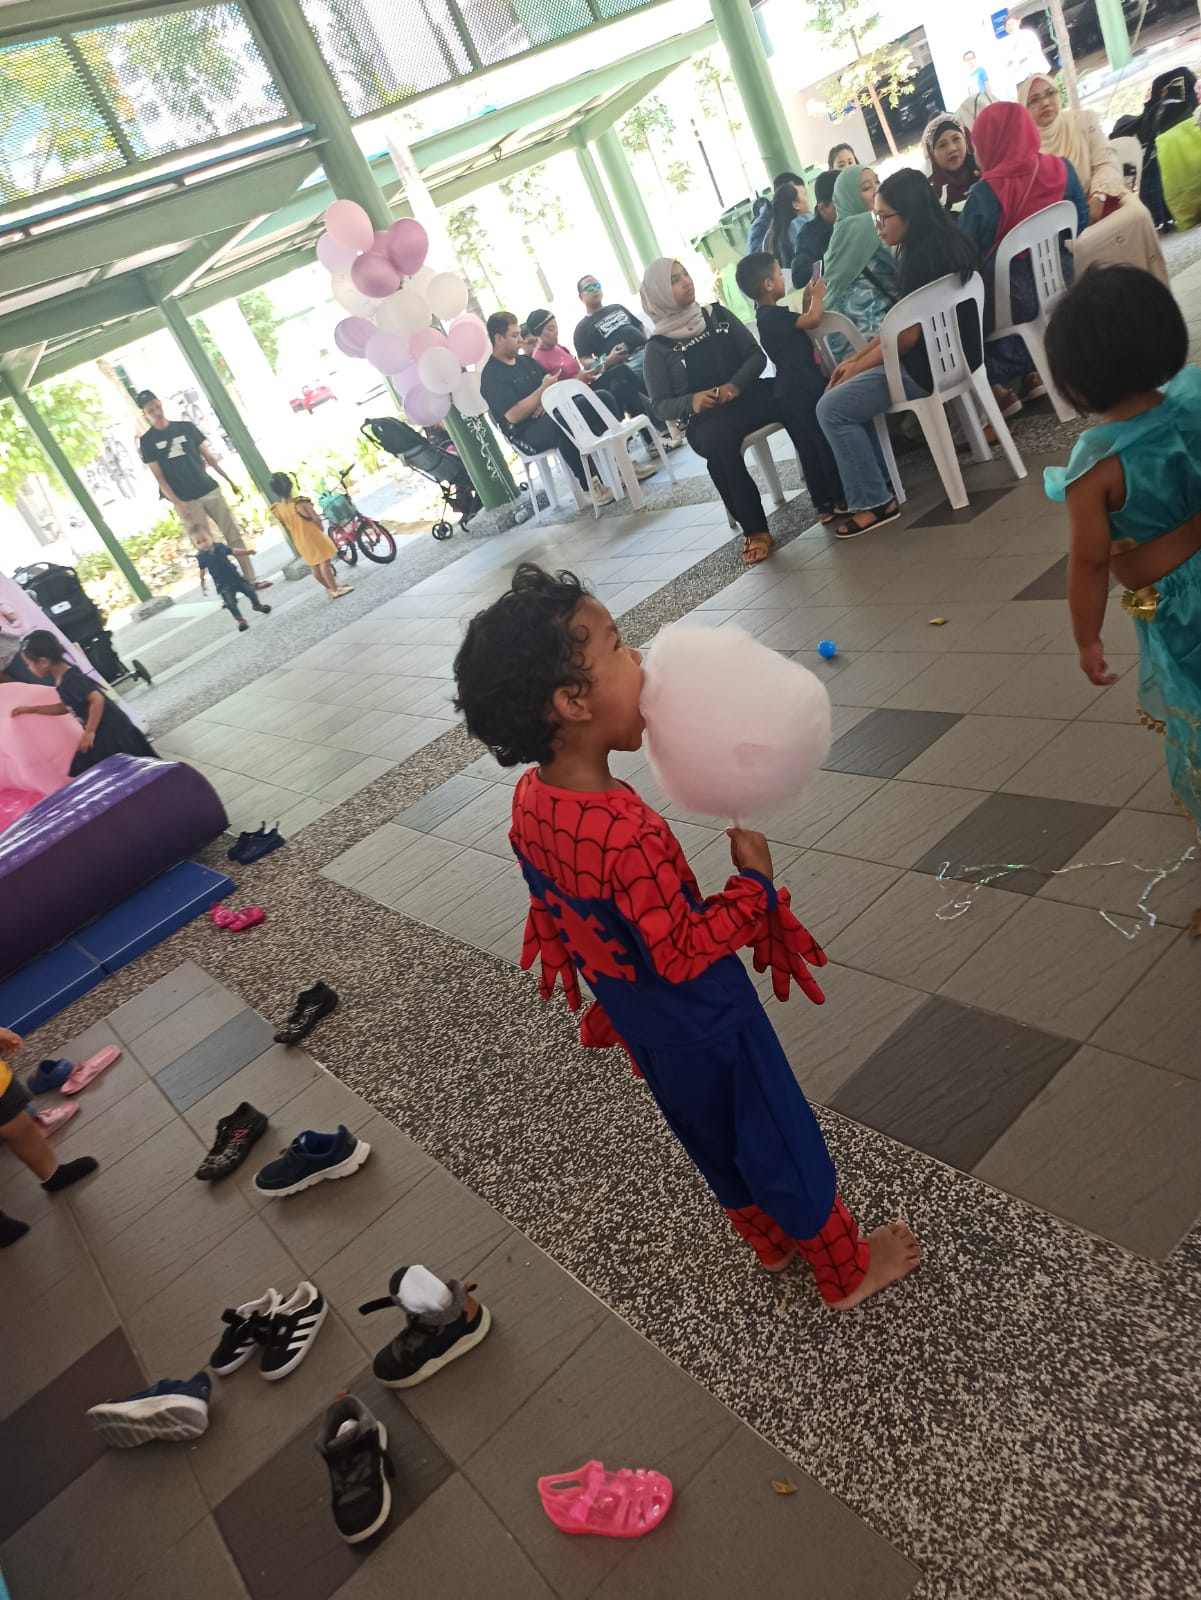 Spiderman eating cotton candy